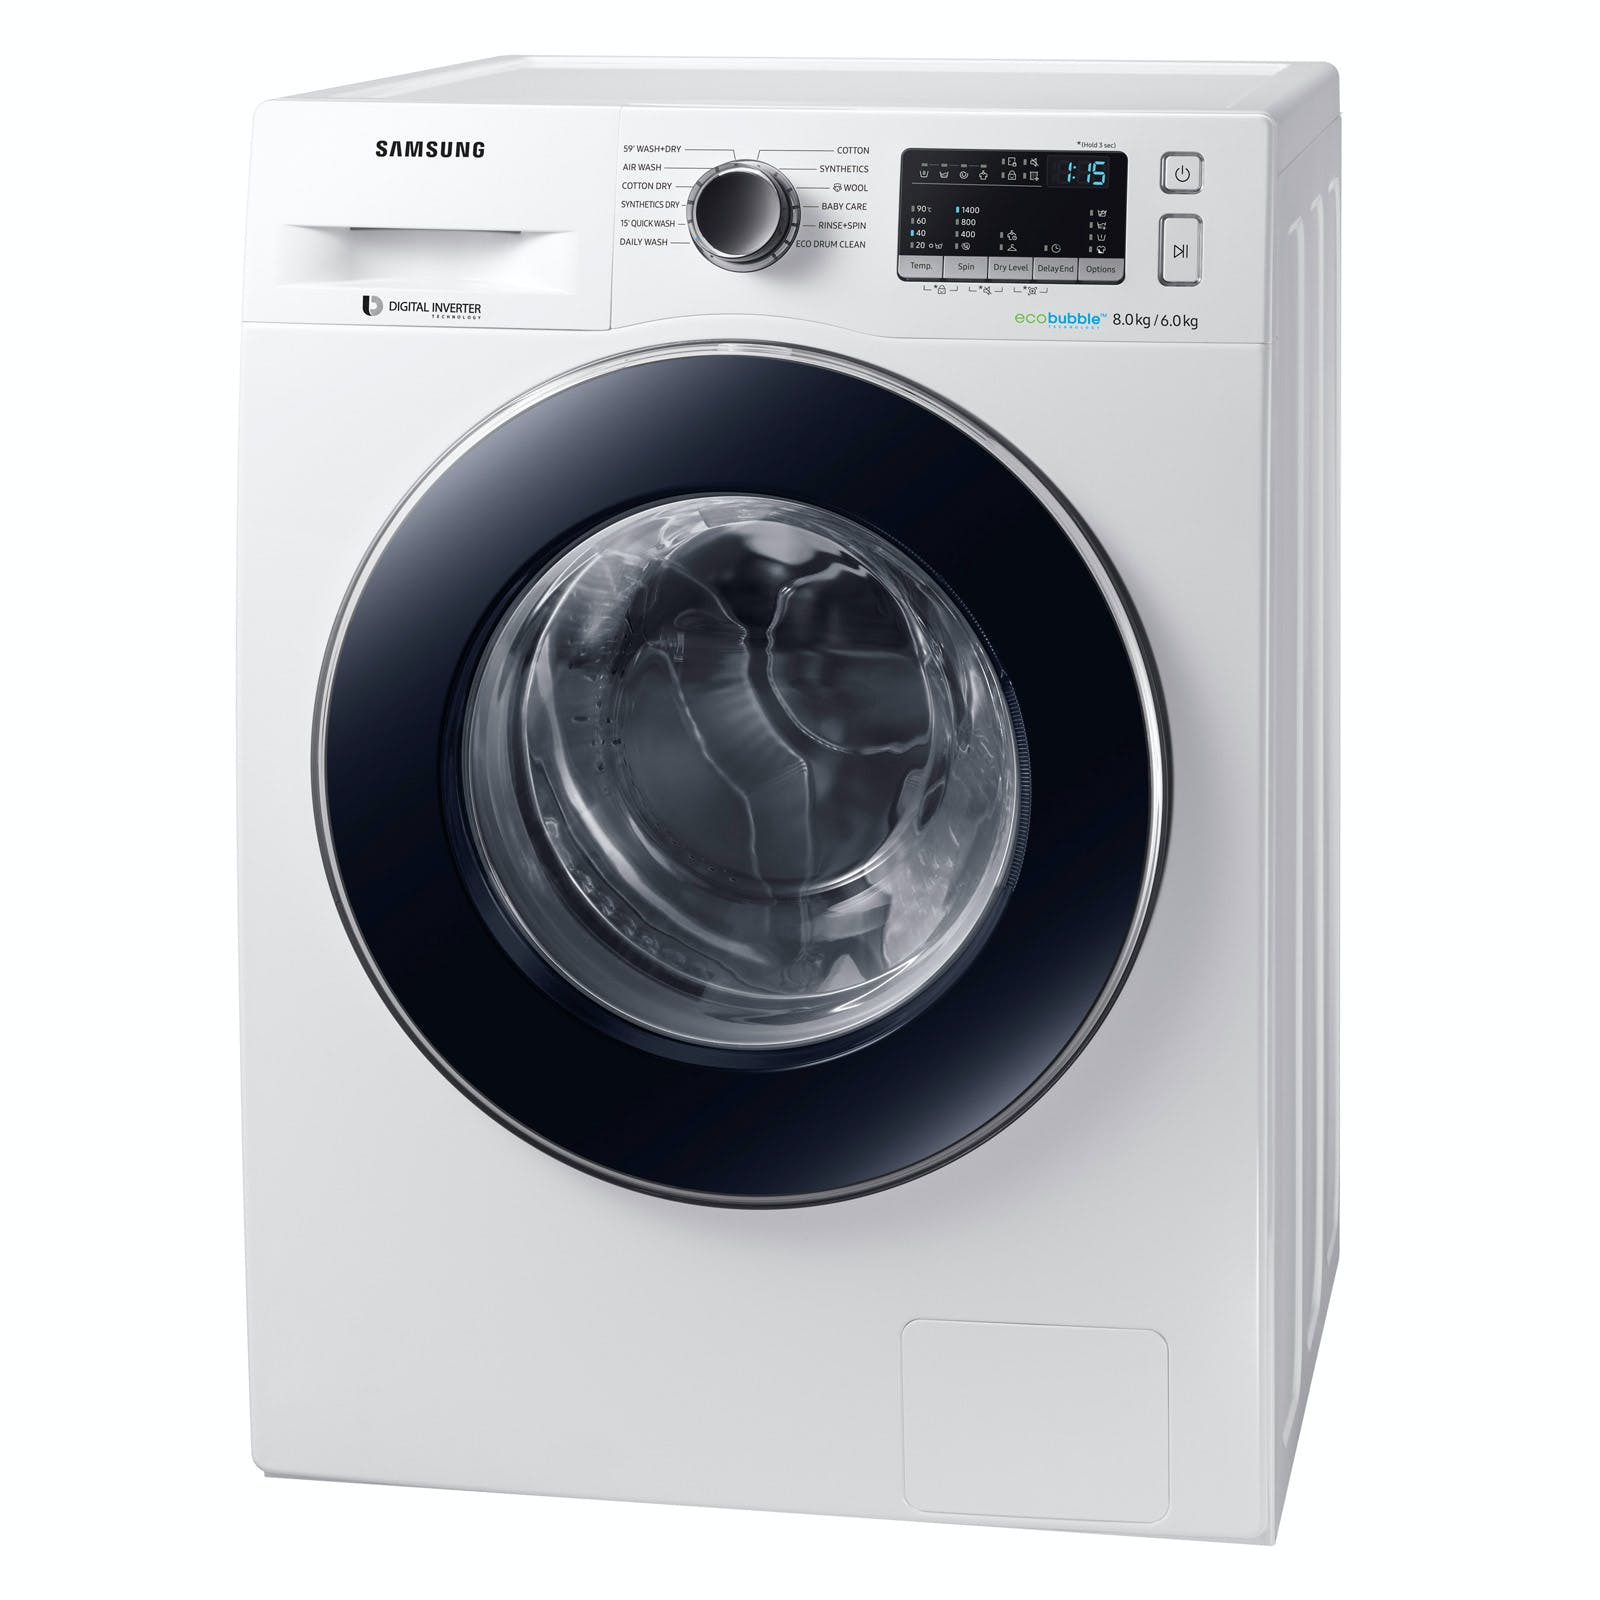 Samsung wd80m4453jw eco bubble washer dryer in white - Samsung eco bubble ...